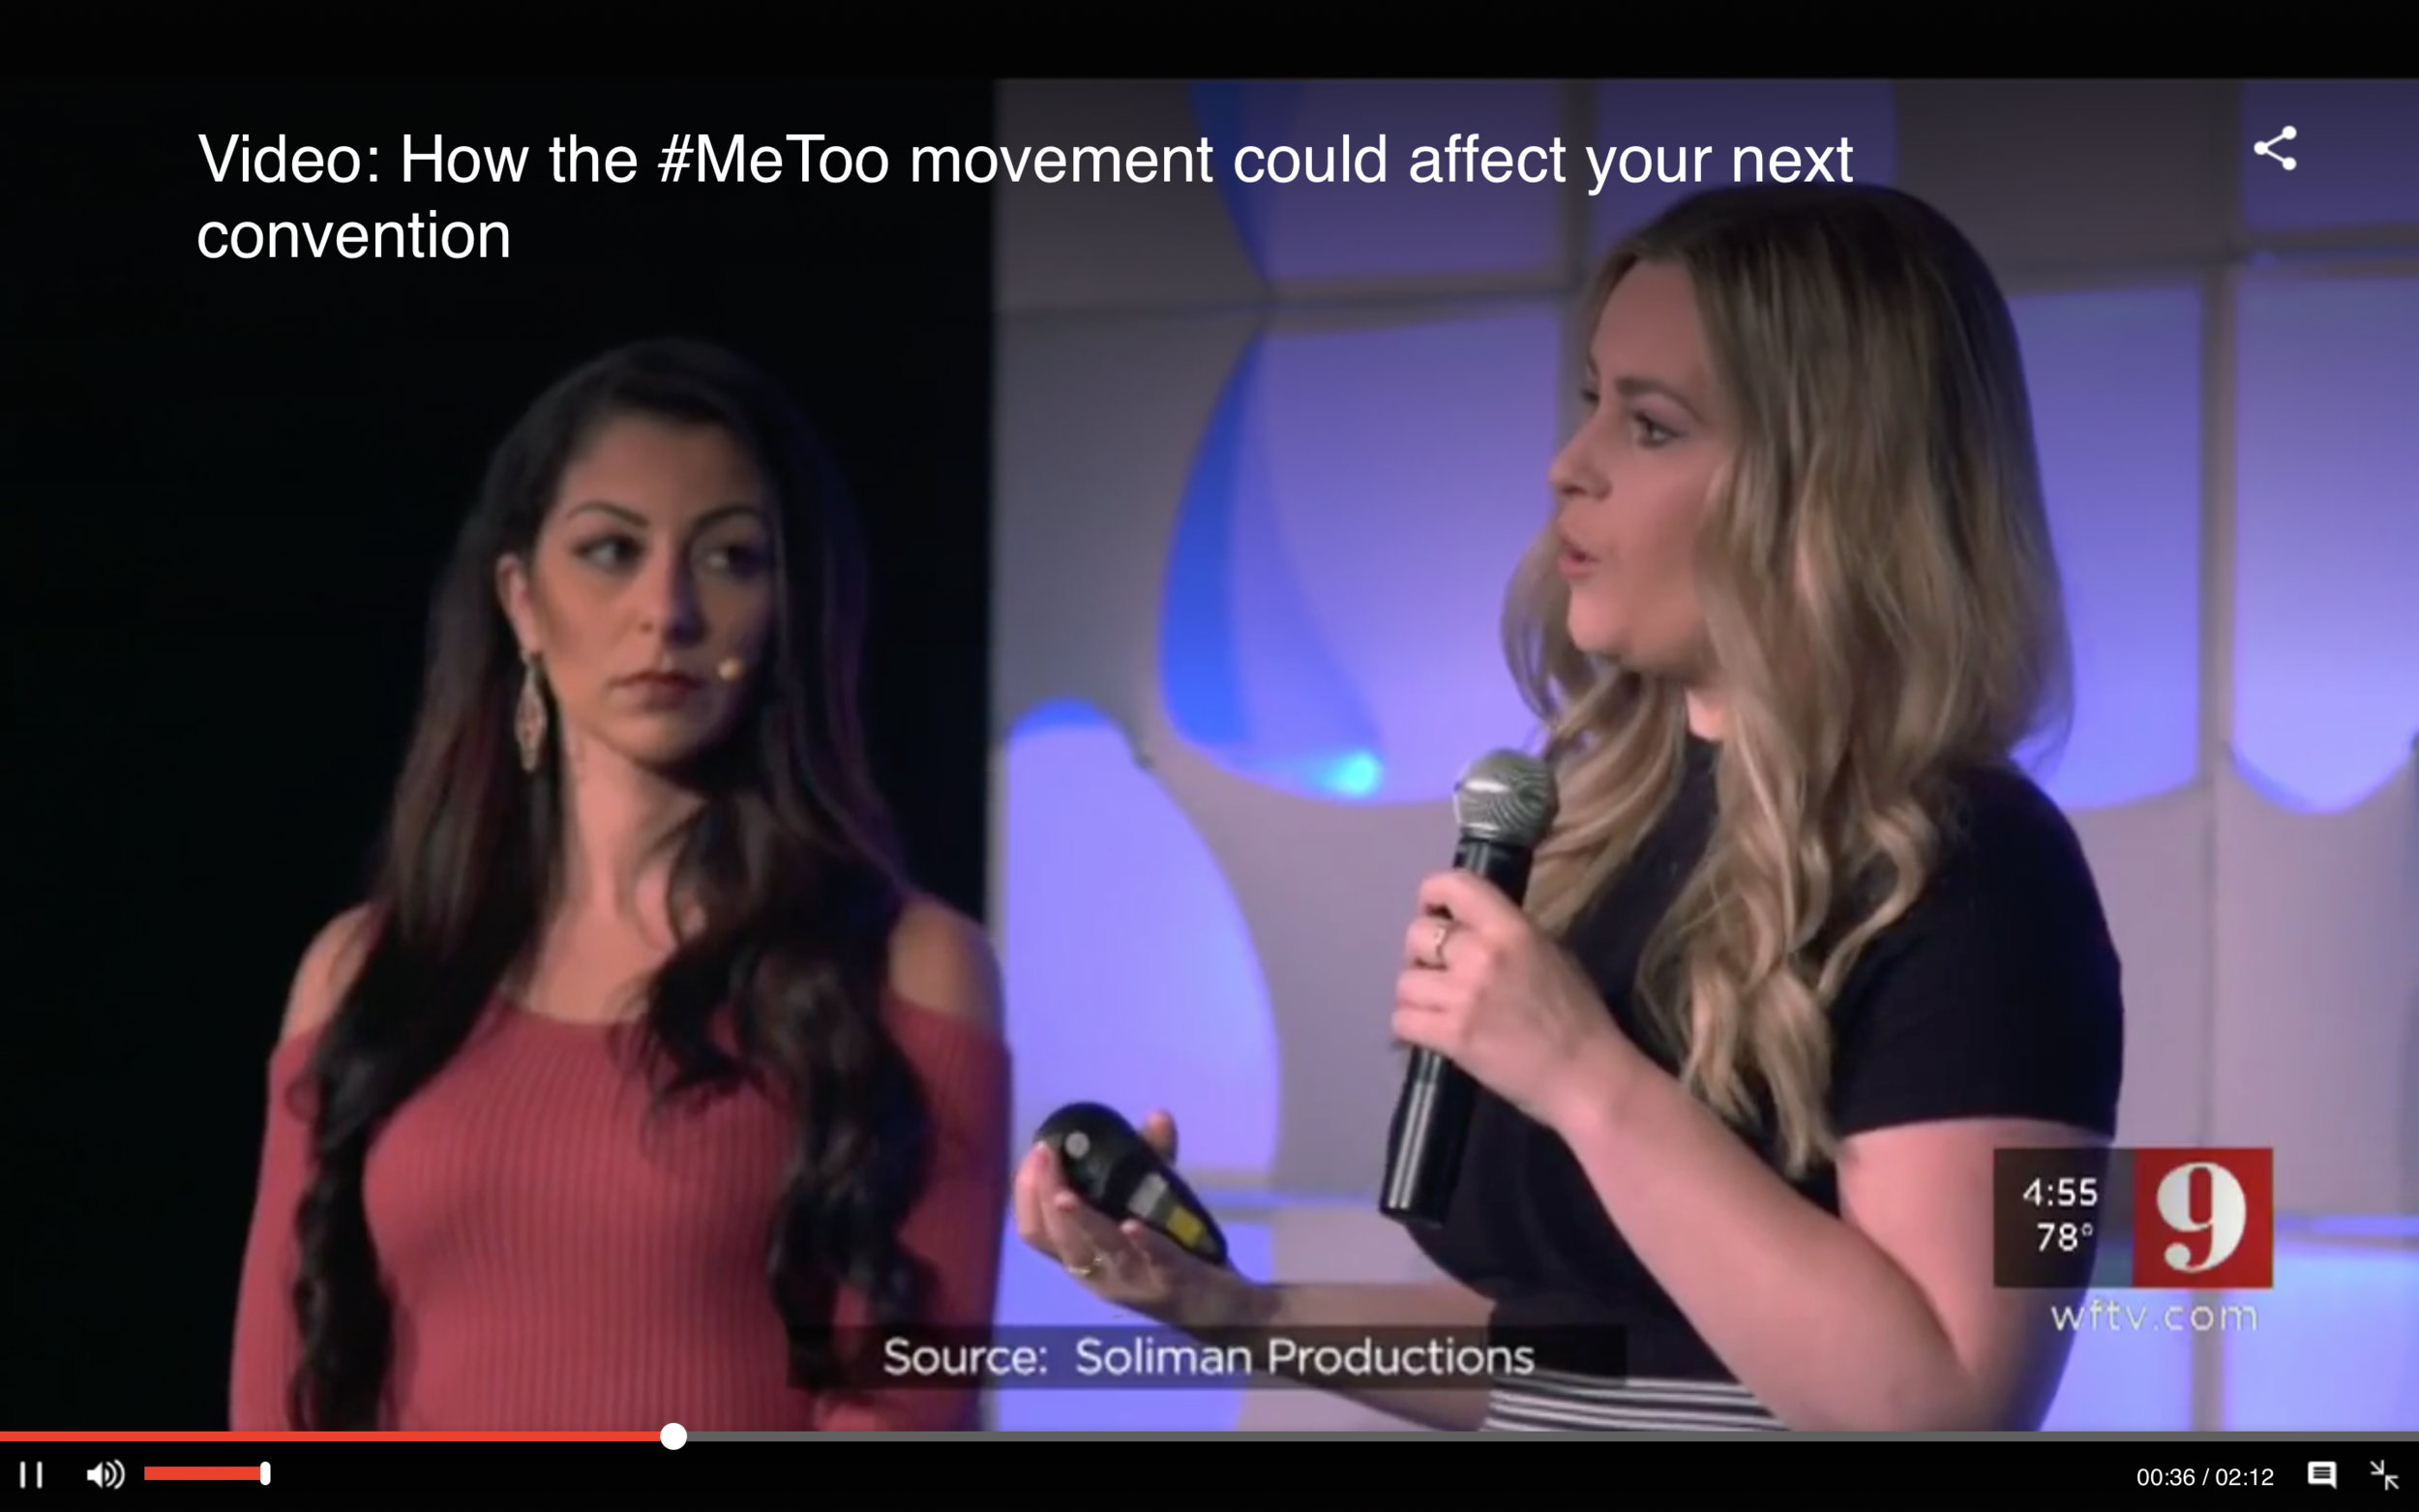 VIDEO: How the #MeToo movement could affect your next convention | Orlando WFTV9